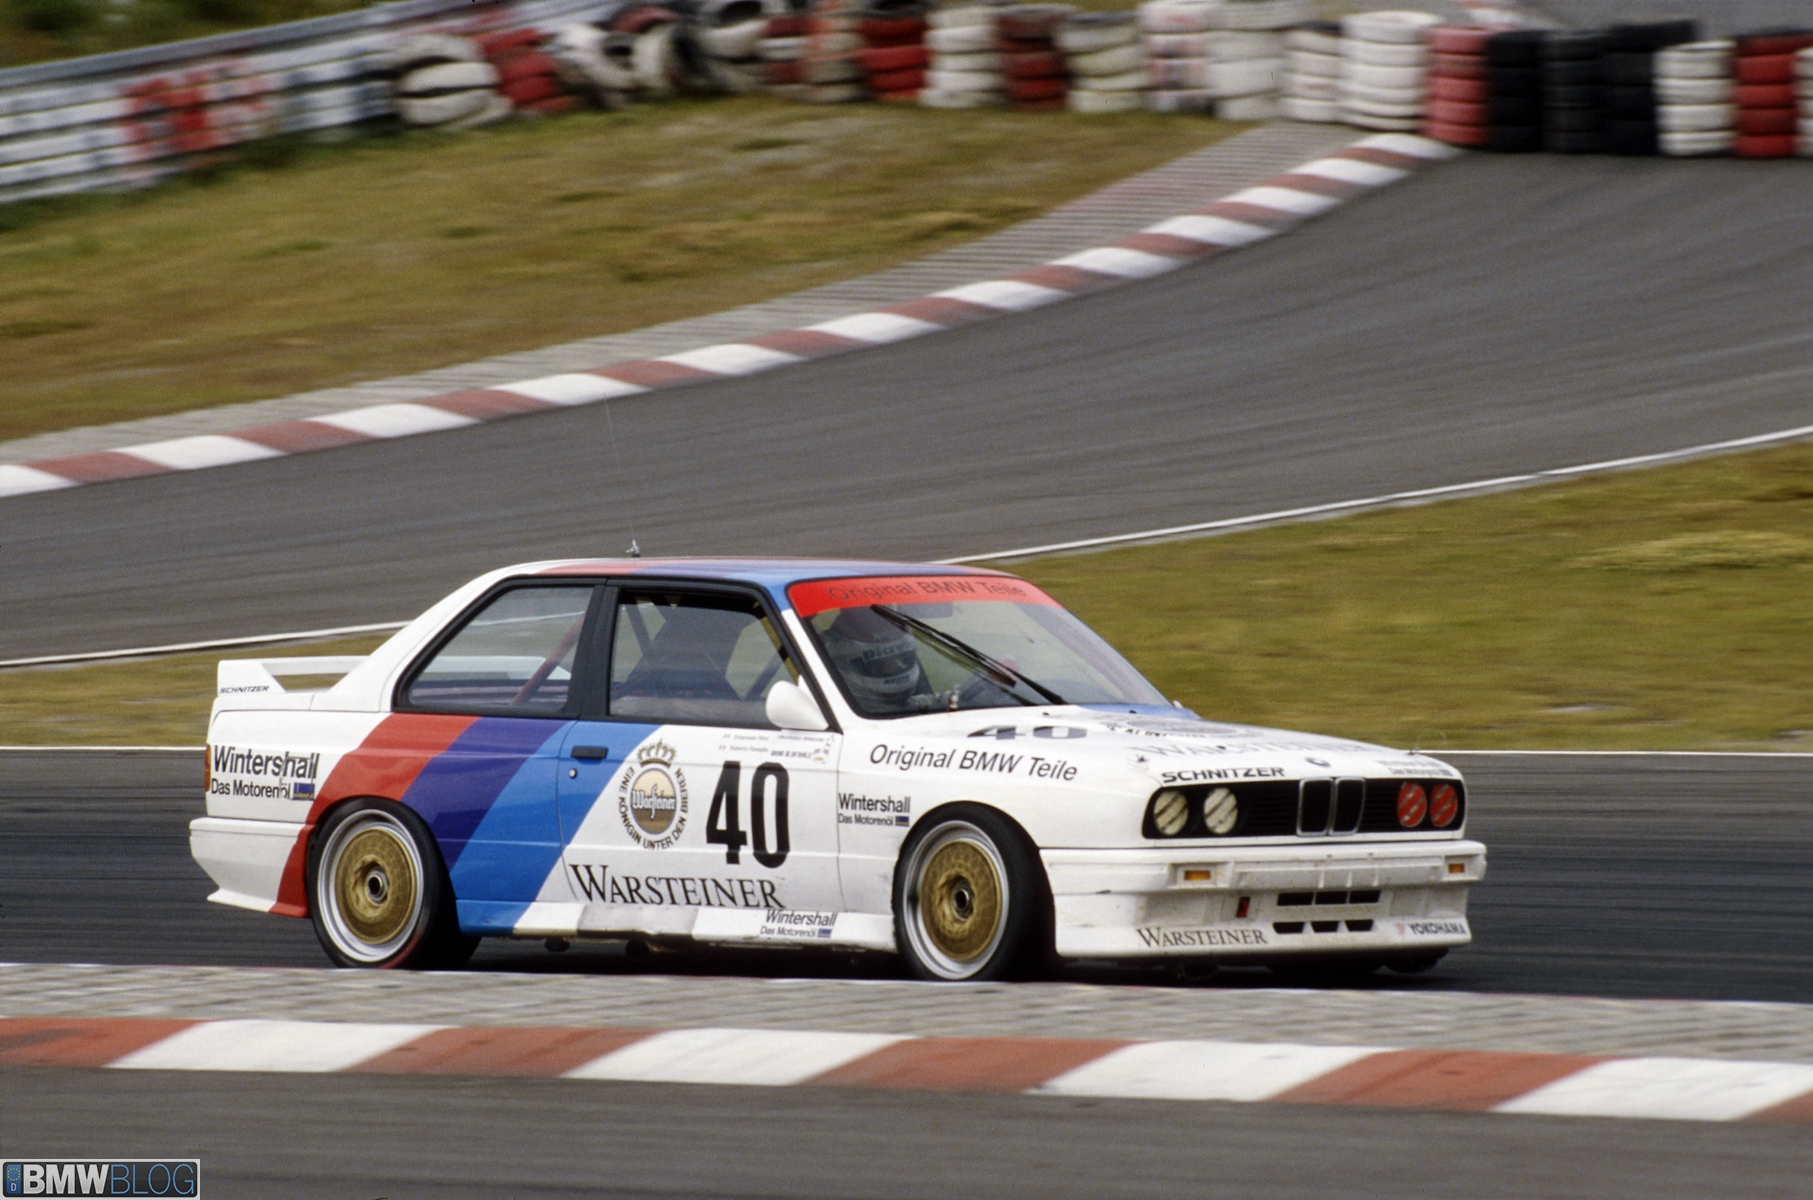 Bmw M3 Gtr Real Life >> The Champion in Touring Car Racing: BMW M3